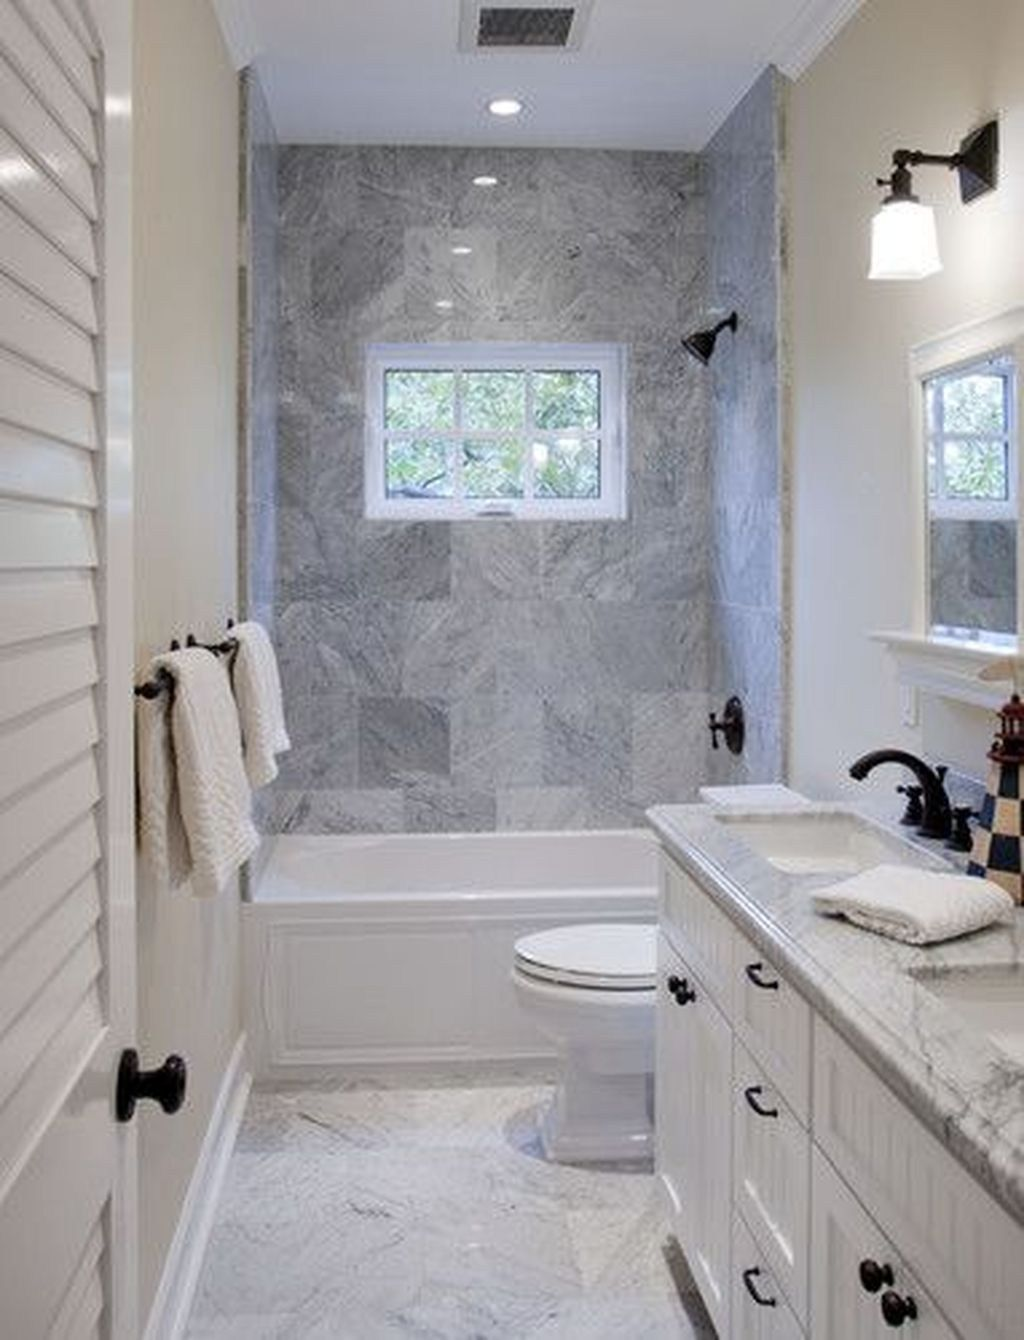 Stylish Small Master Bathroom Remodel Design Ideas 40 Bathroom Design Inspiration Bathroom Tub Shower Window In Shower